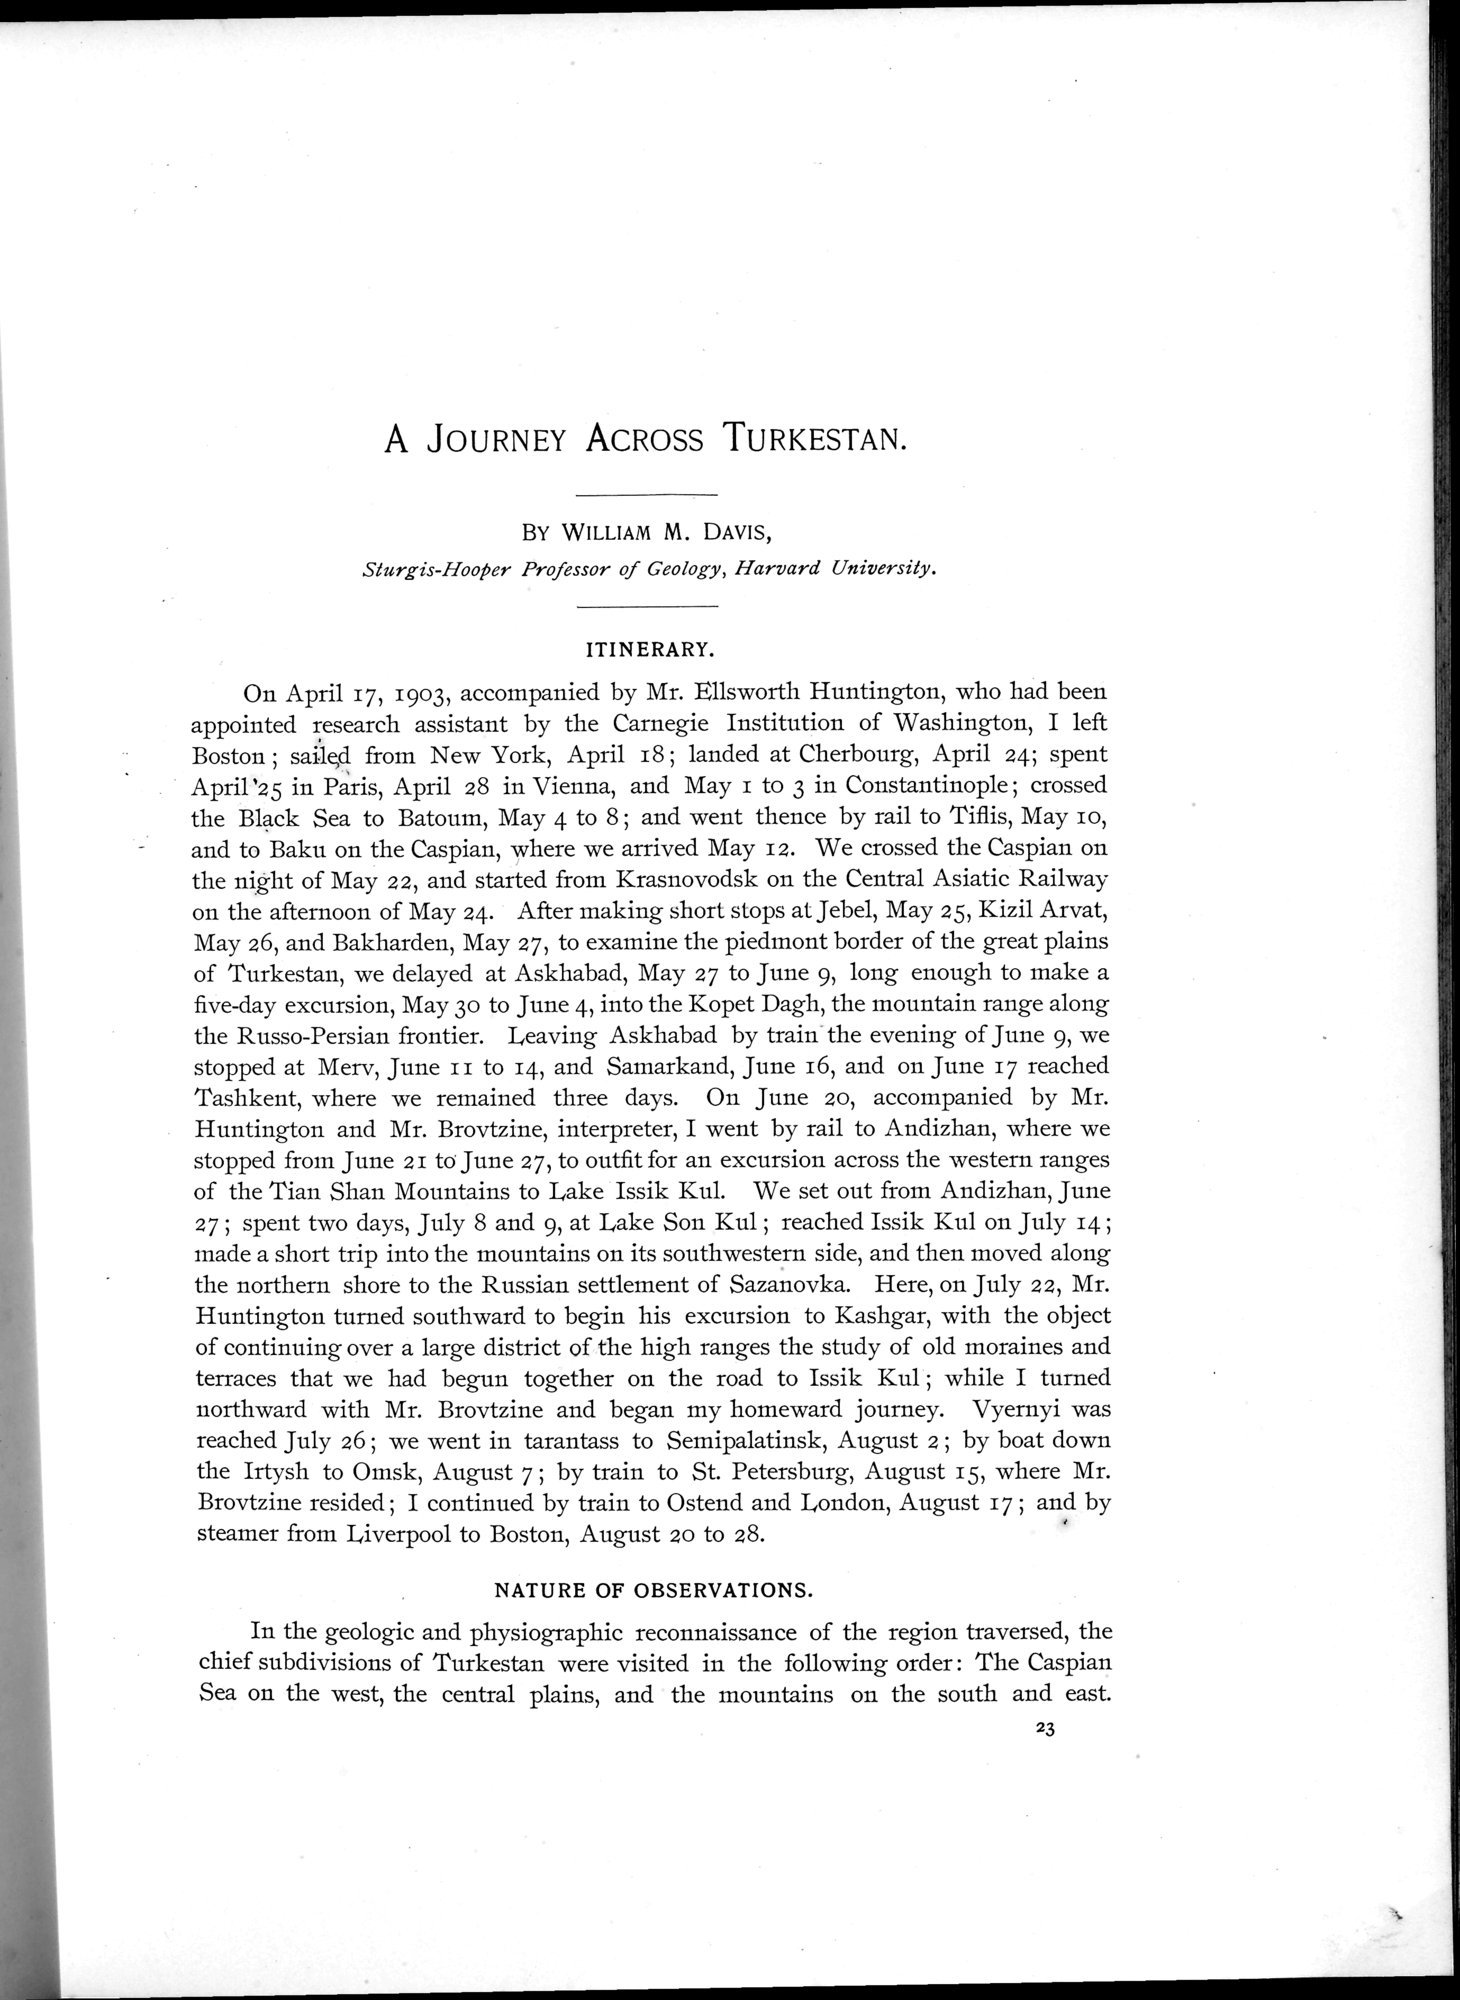 Explorations in Turkestan 1903 : vol.1 / Page 47 (Grayscale High Resolution Image)